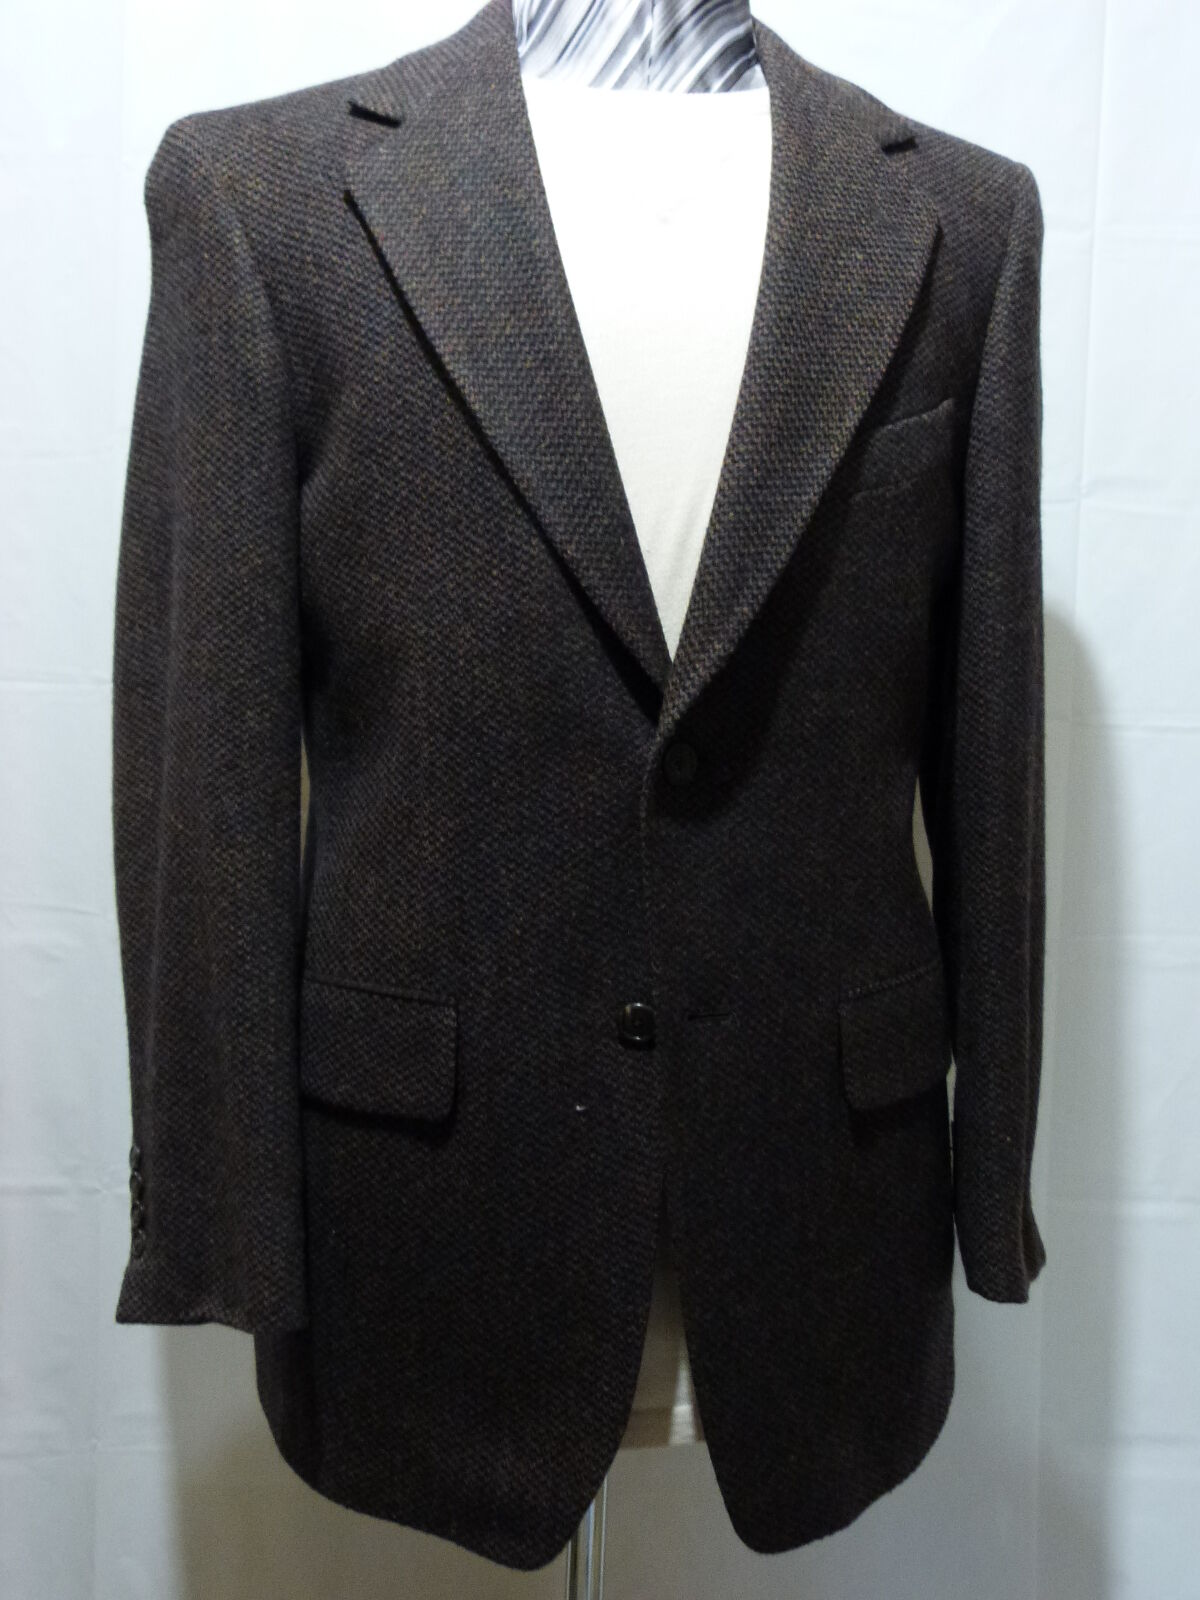 Men's Two Button Sport Coat, 36 R, 100% Wool, Brown, Made in USA,NWT